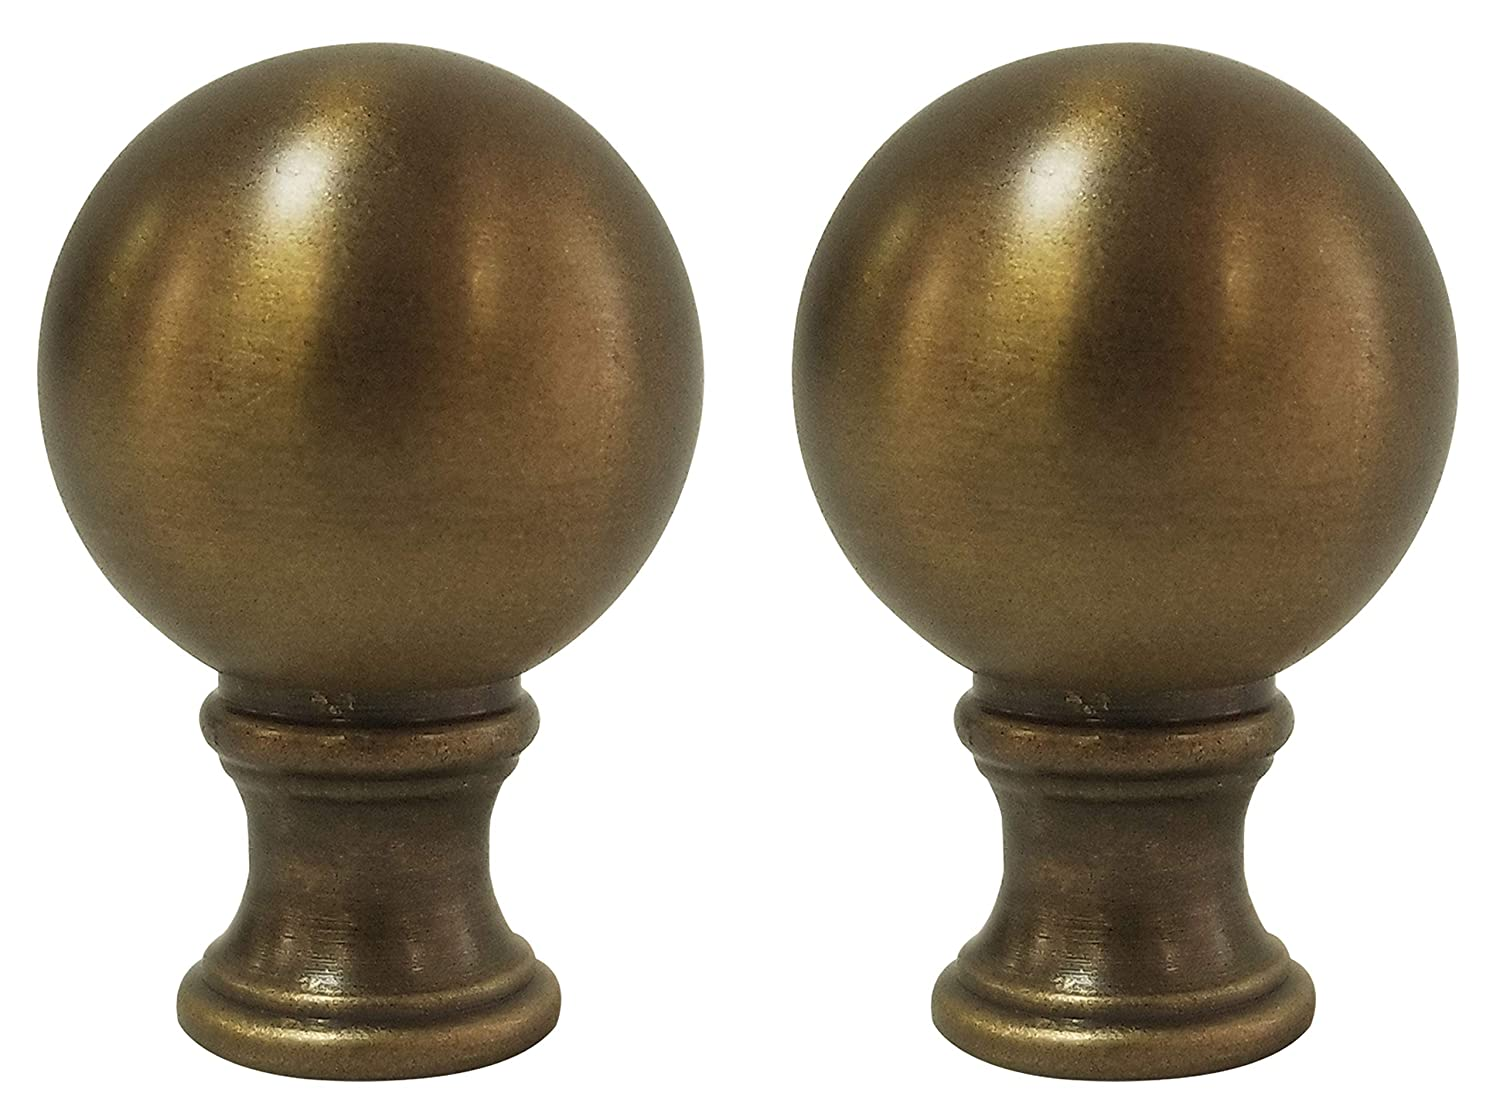 Polished Brass Royal Designs Small Ball Lamp Finial for Lamp Shade